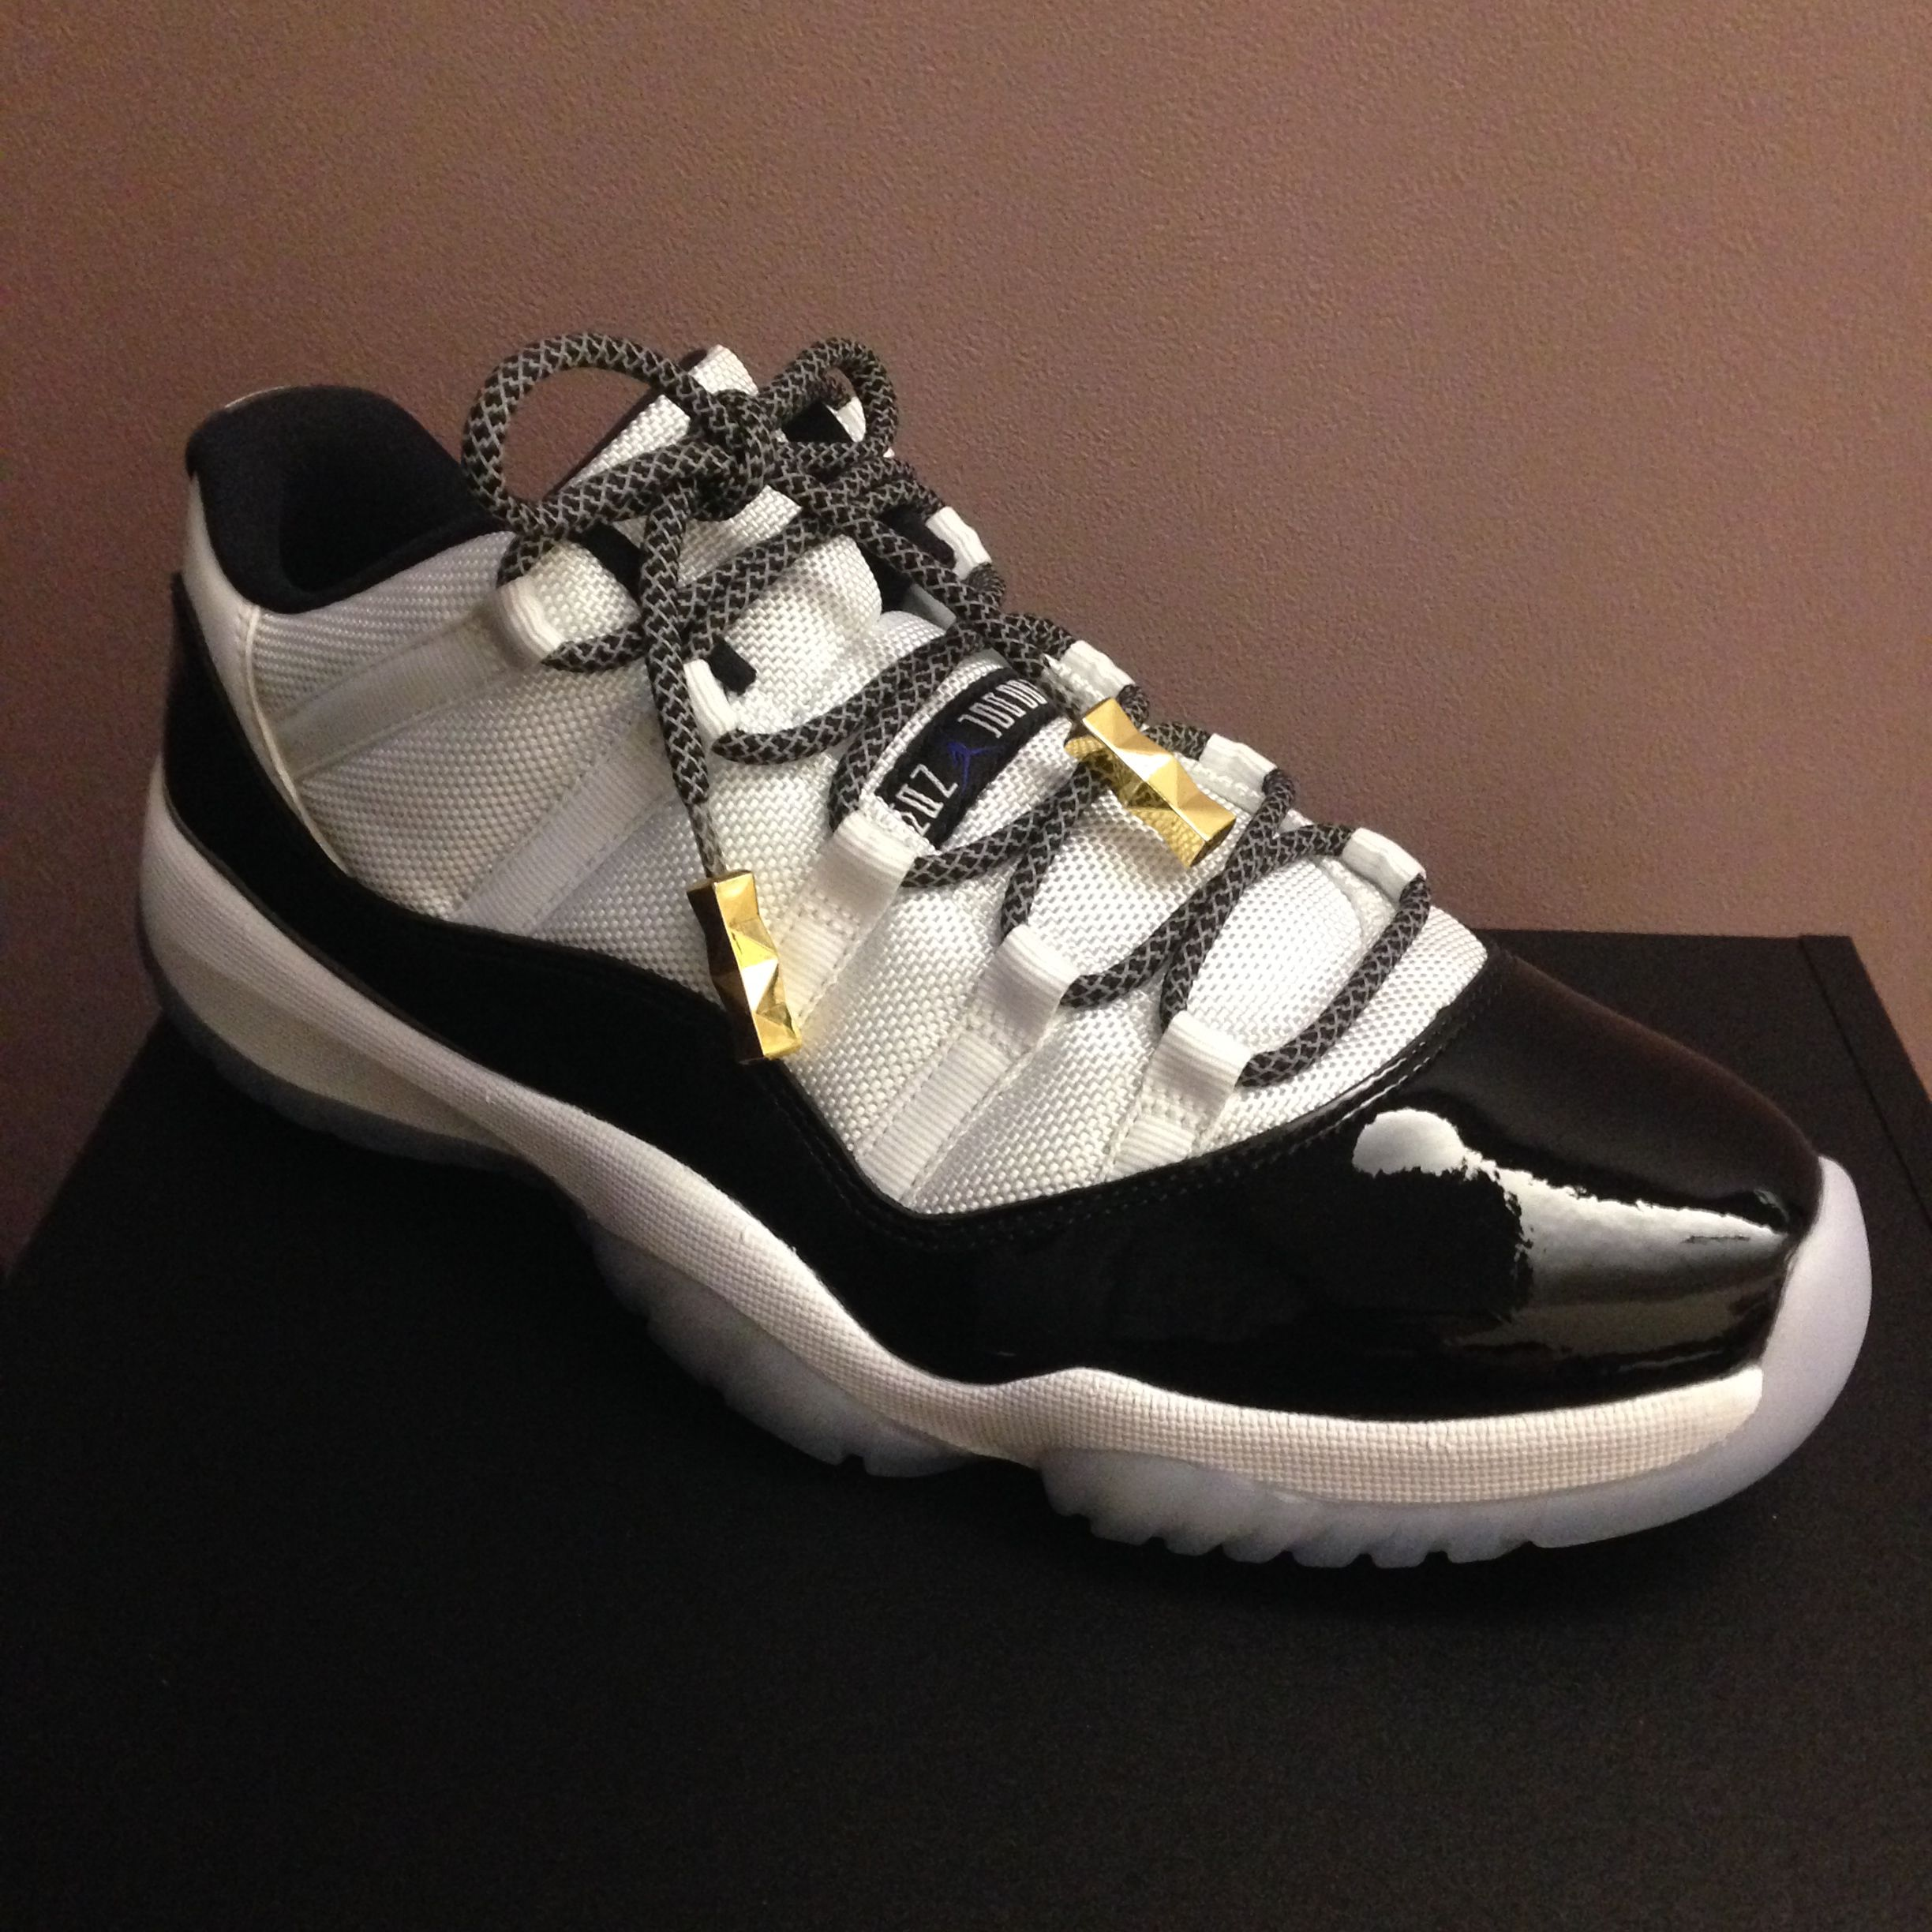 042e97e4940 Jordan XI Low Concord with Black Reflective Rope Laces and  Peanut  Gold  Tips